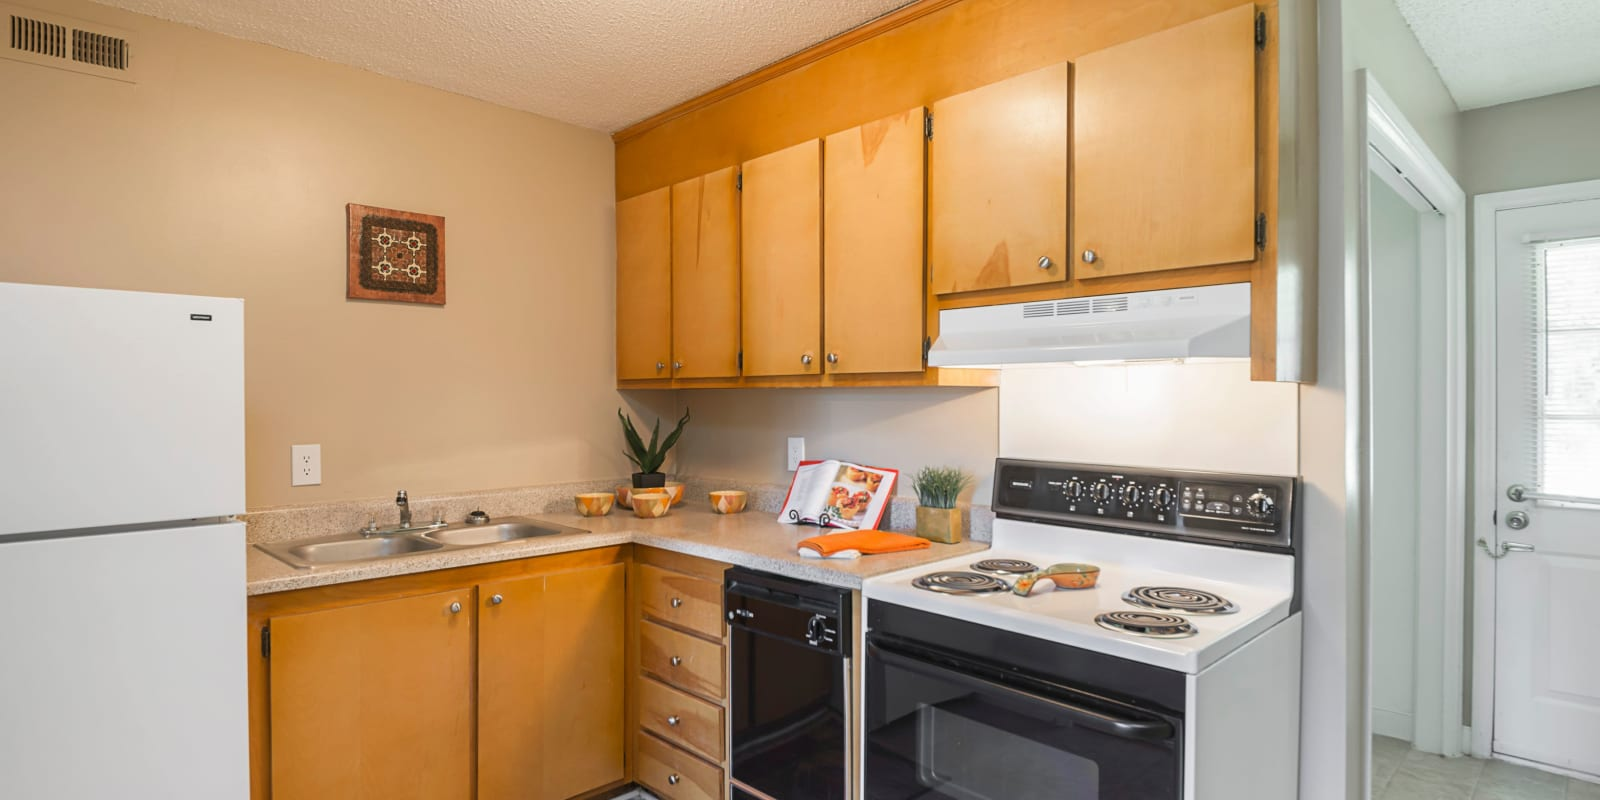 A kitchen with white appliances at Lakewood Apartment Homes in Salisbury, North Carolina